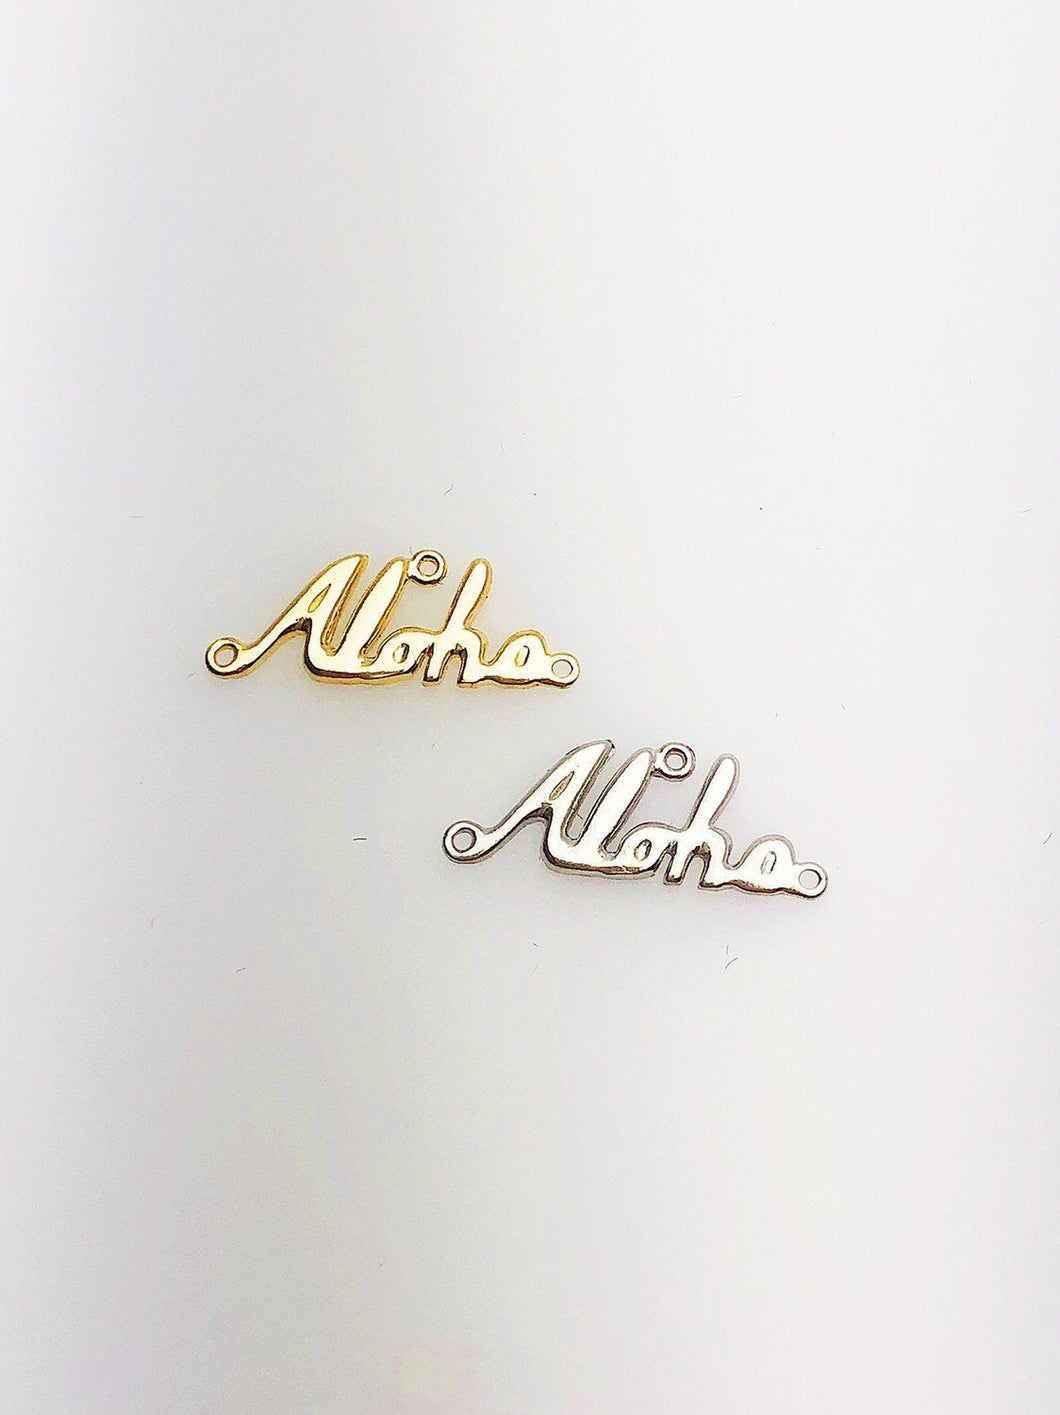 14K Solid Gold Aloha Script Charm w/two Rings, 18.0x6.9mm, Made in USA (L-166)